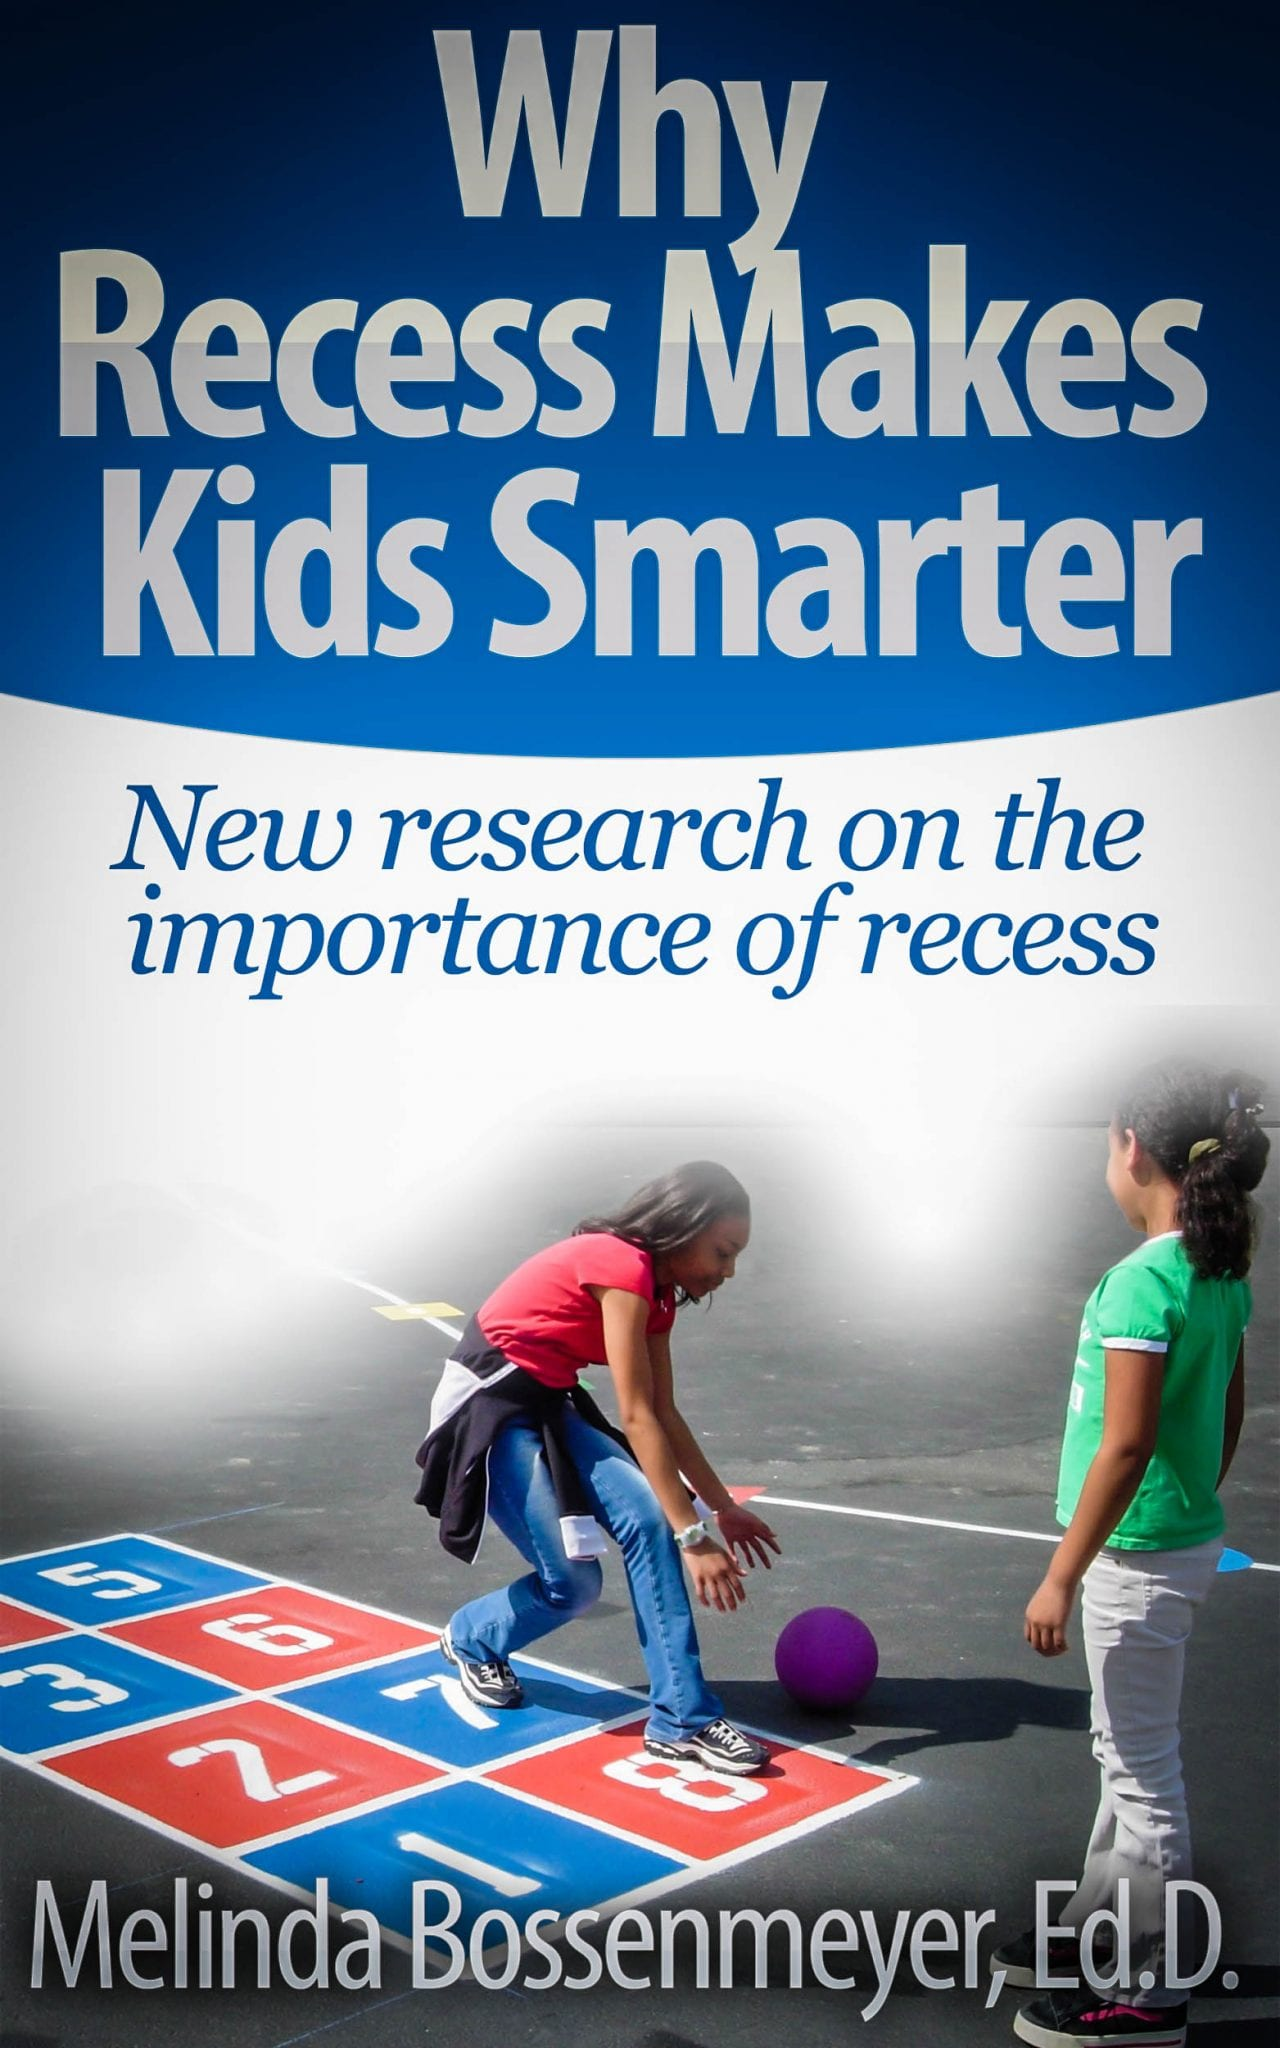 recess at school essay School and parents should understand why kids need recess recess can benefit kids in social, physical and brain development, thus shall never be comprised for academic learning.